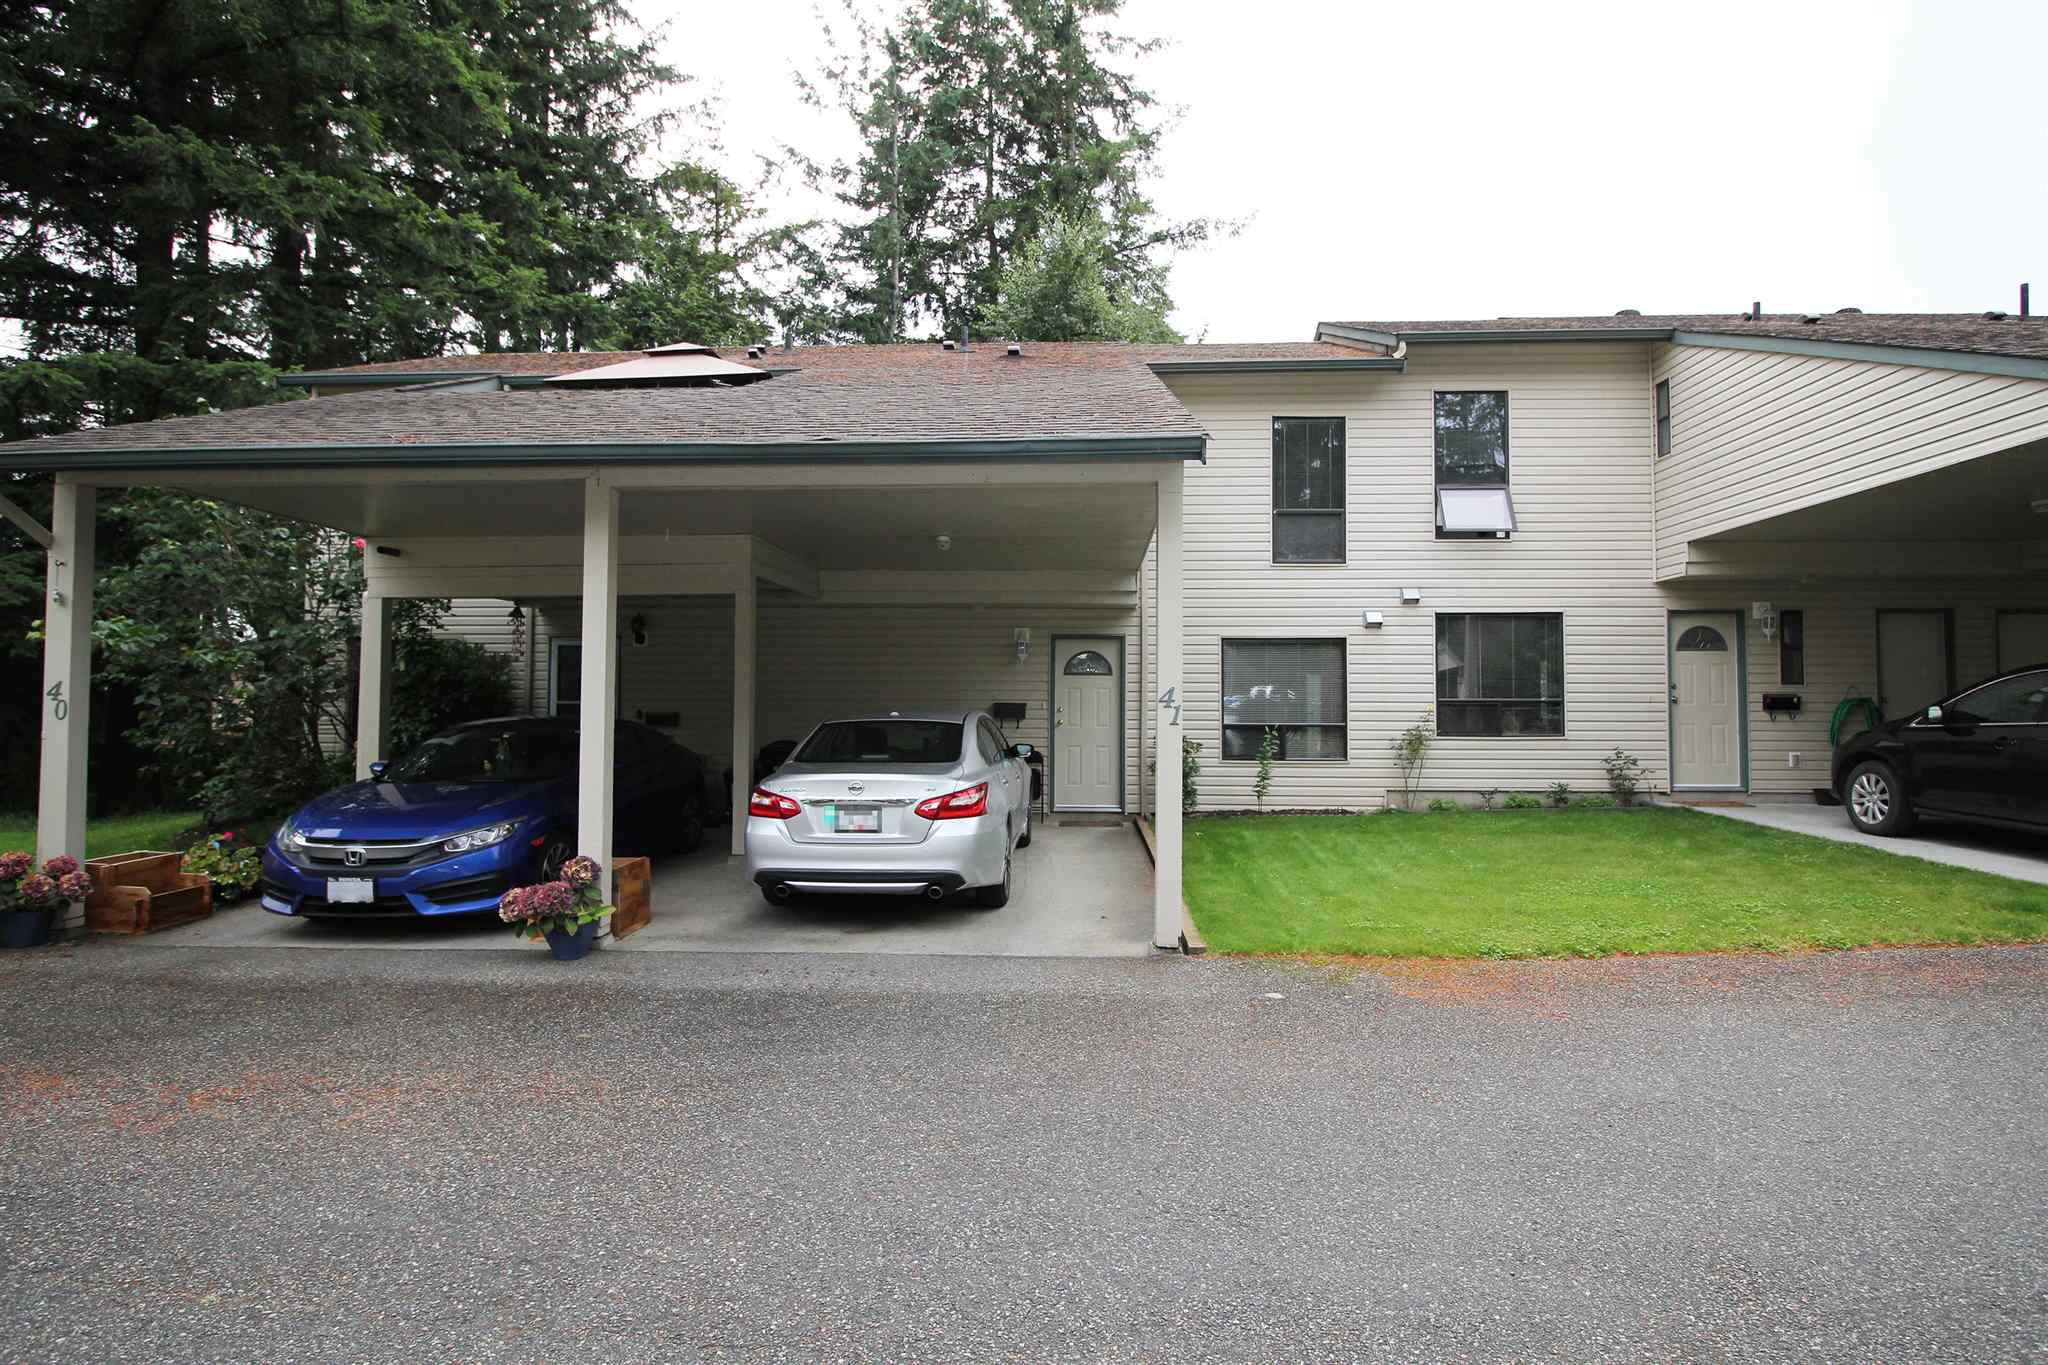 41 32310 MOUAT DRIVE - Abbotsford West Townhouse for sale, 3 Bedrooms (R2604336) - #1